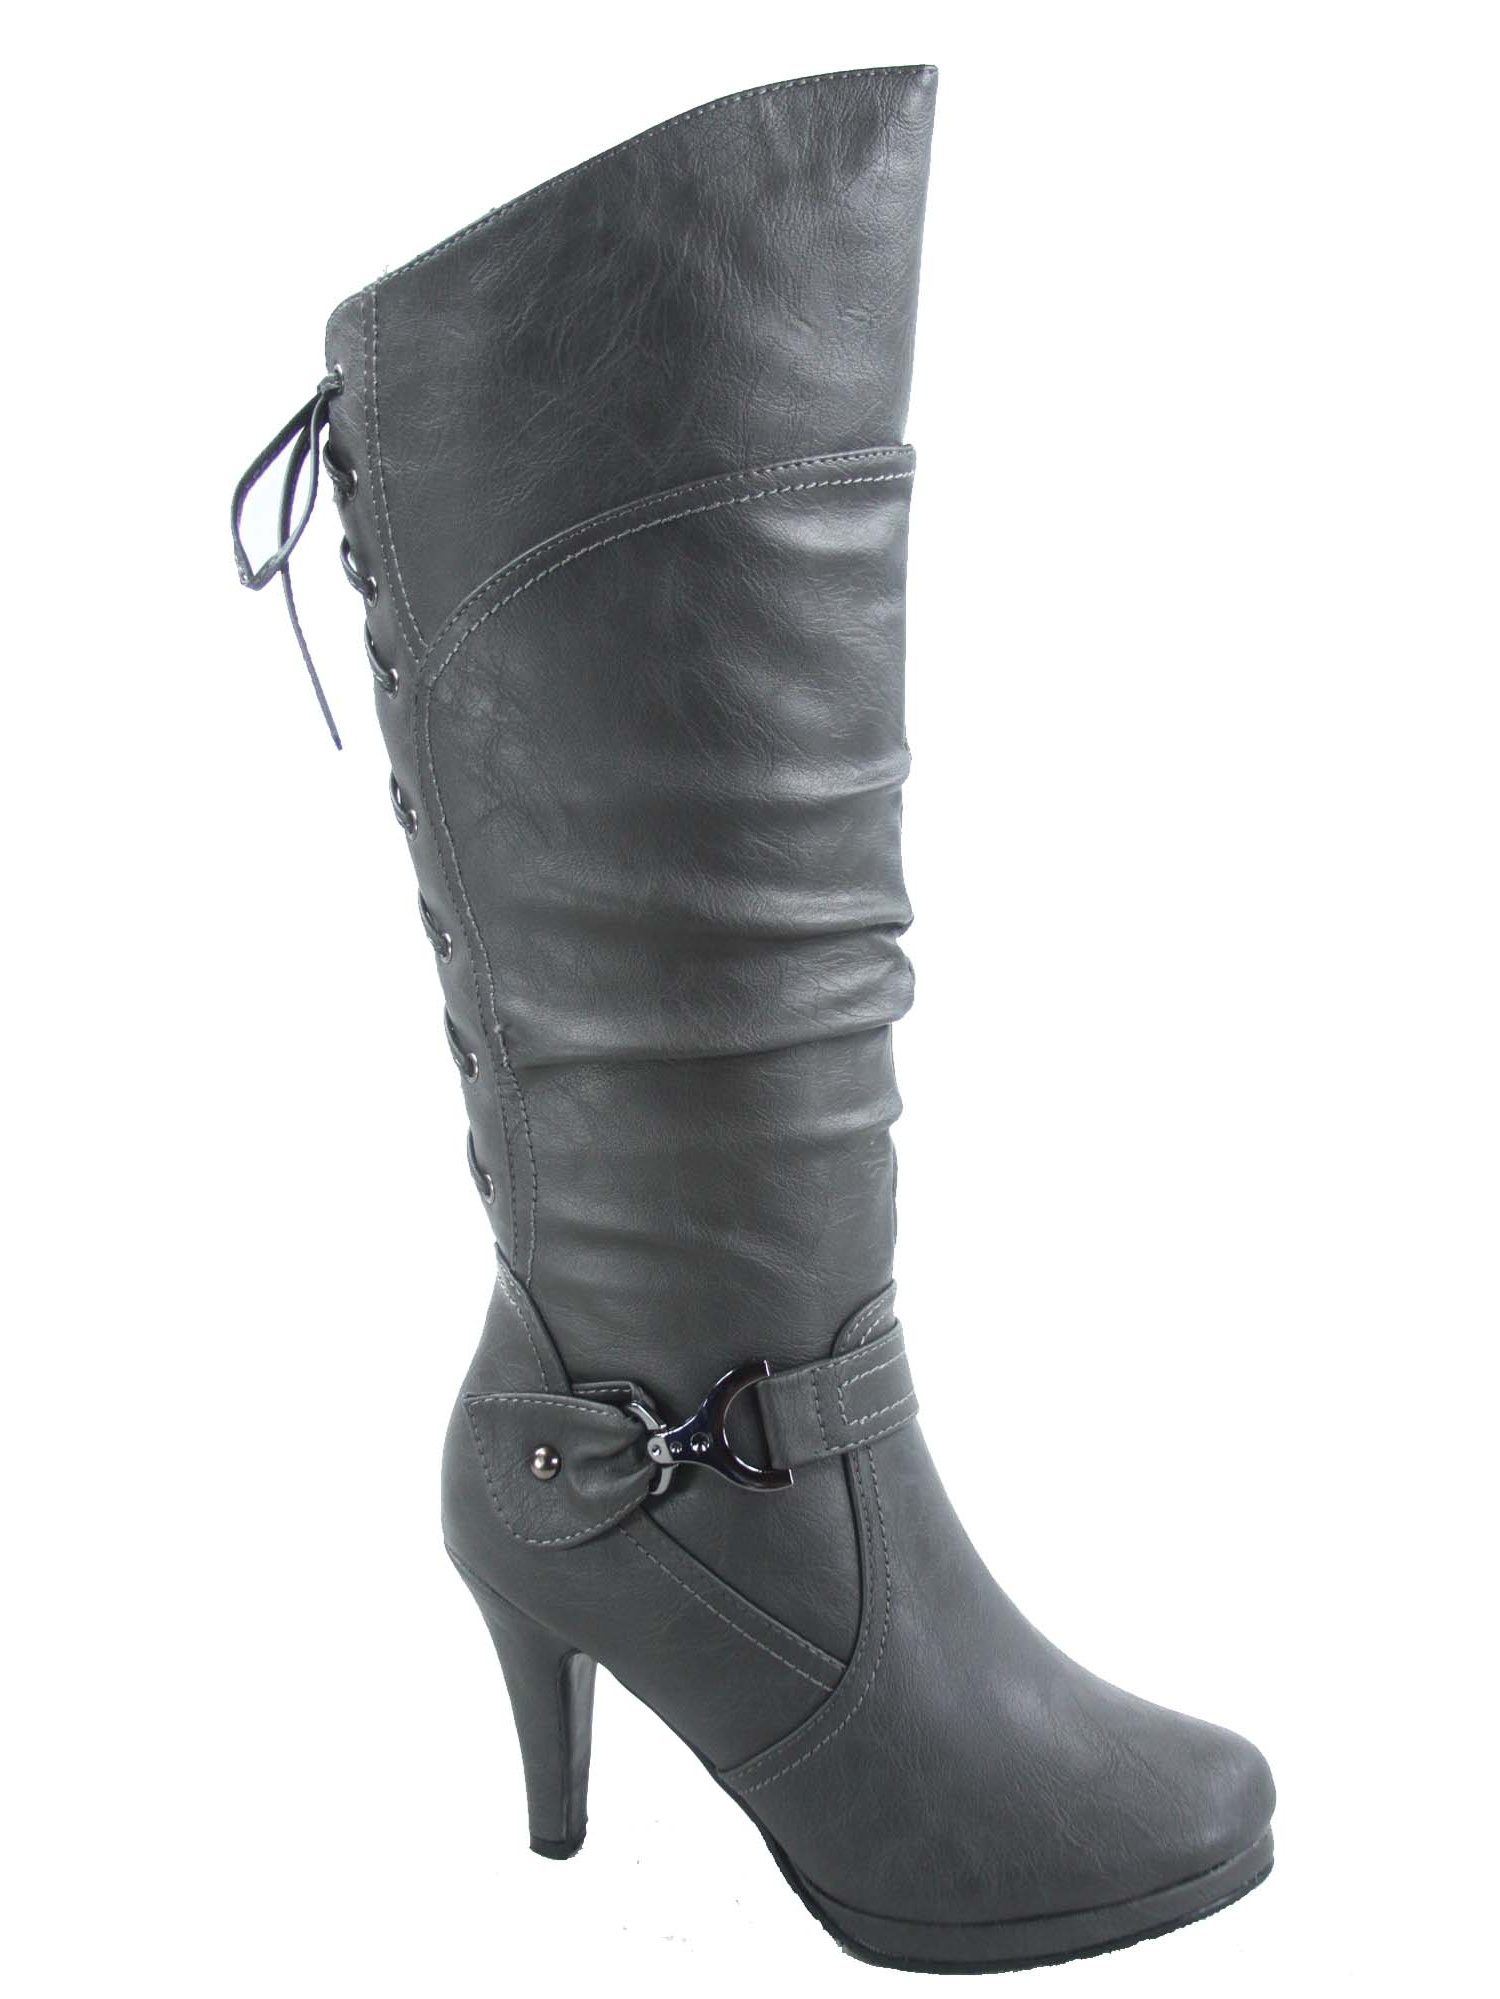 Women Platform Stiletto Lace Up Buckle Fold Over Round Toe Over Knee High Boots